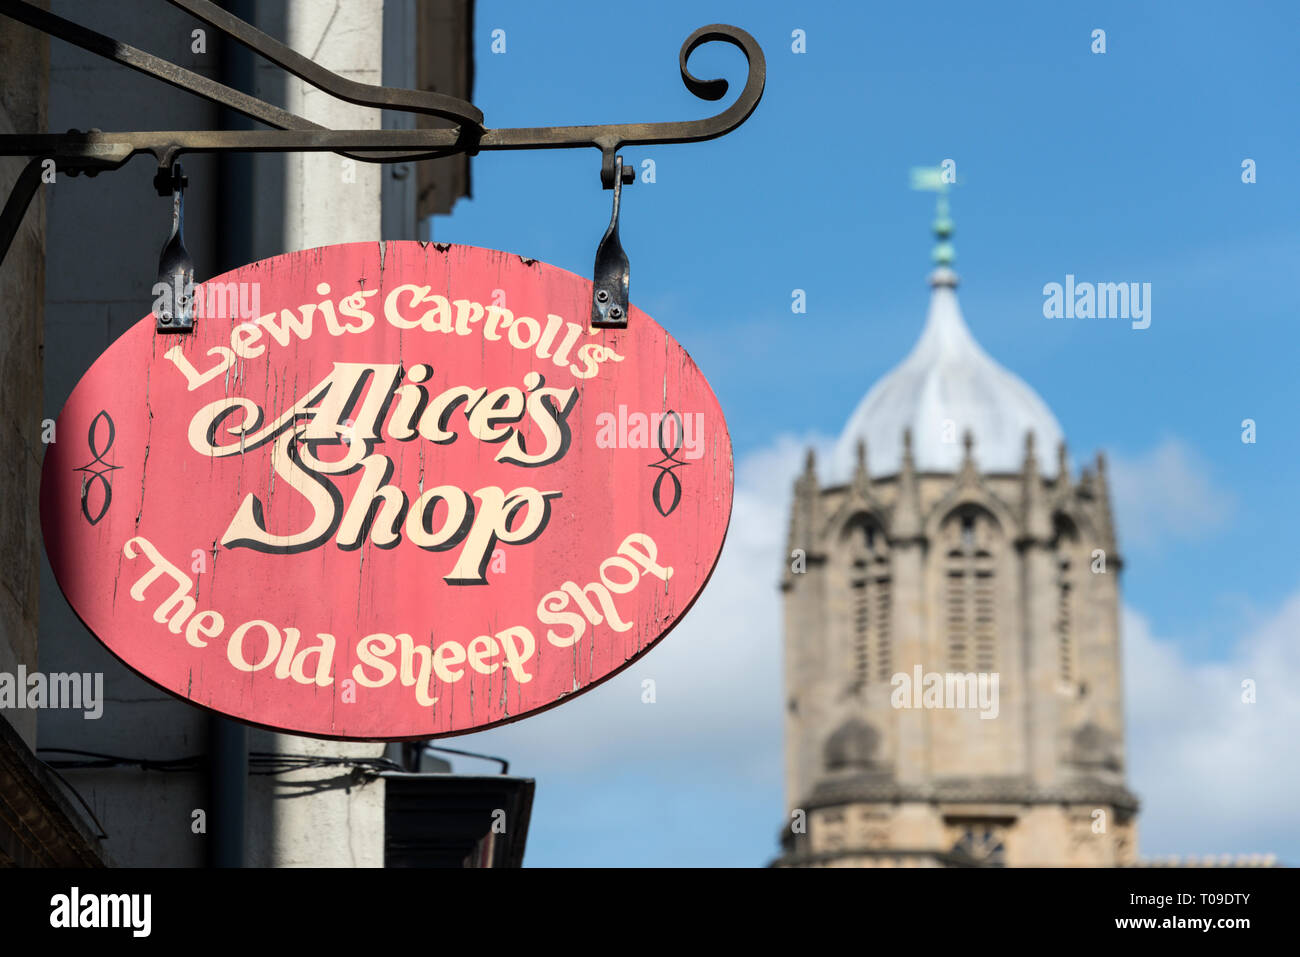 A Alice & Wonderland shop on St. Aldates Street with Christ Church Tom Tower  in Oxford, Oxfordshire,Britain - Stock Image